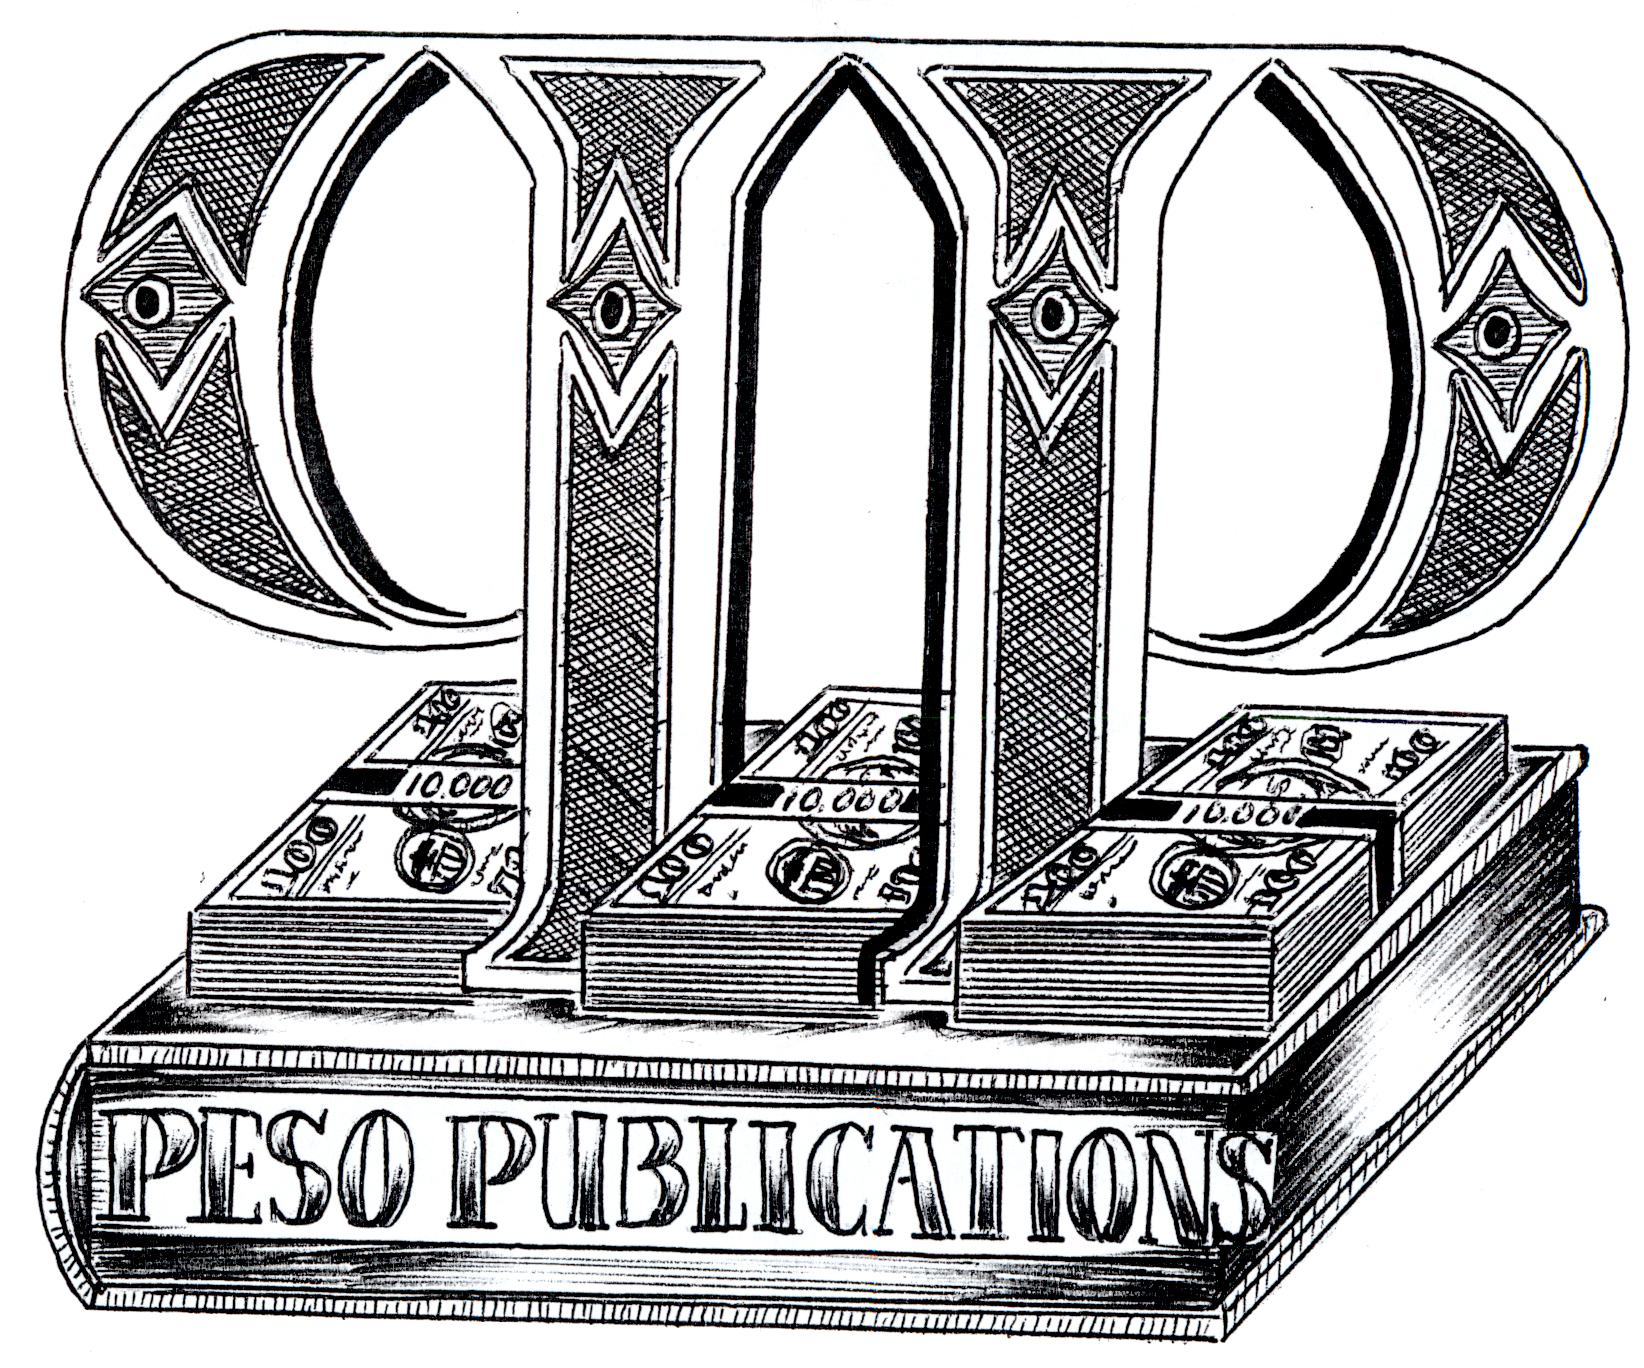 PESO PUBLICATIONS